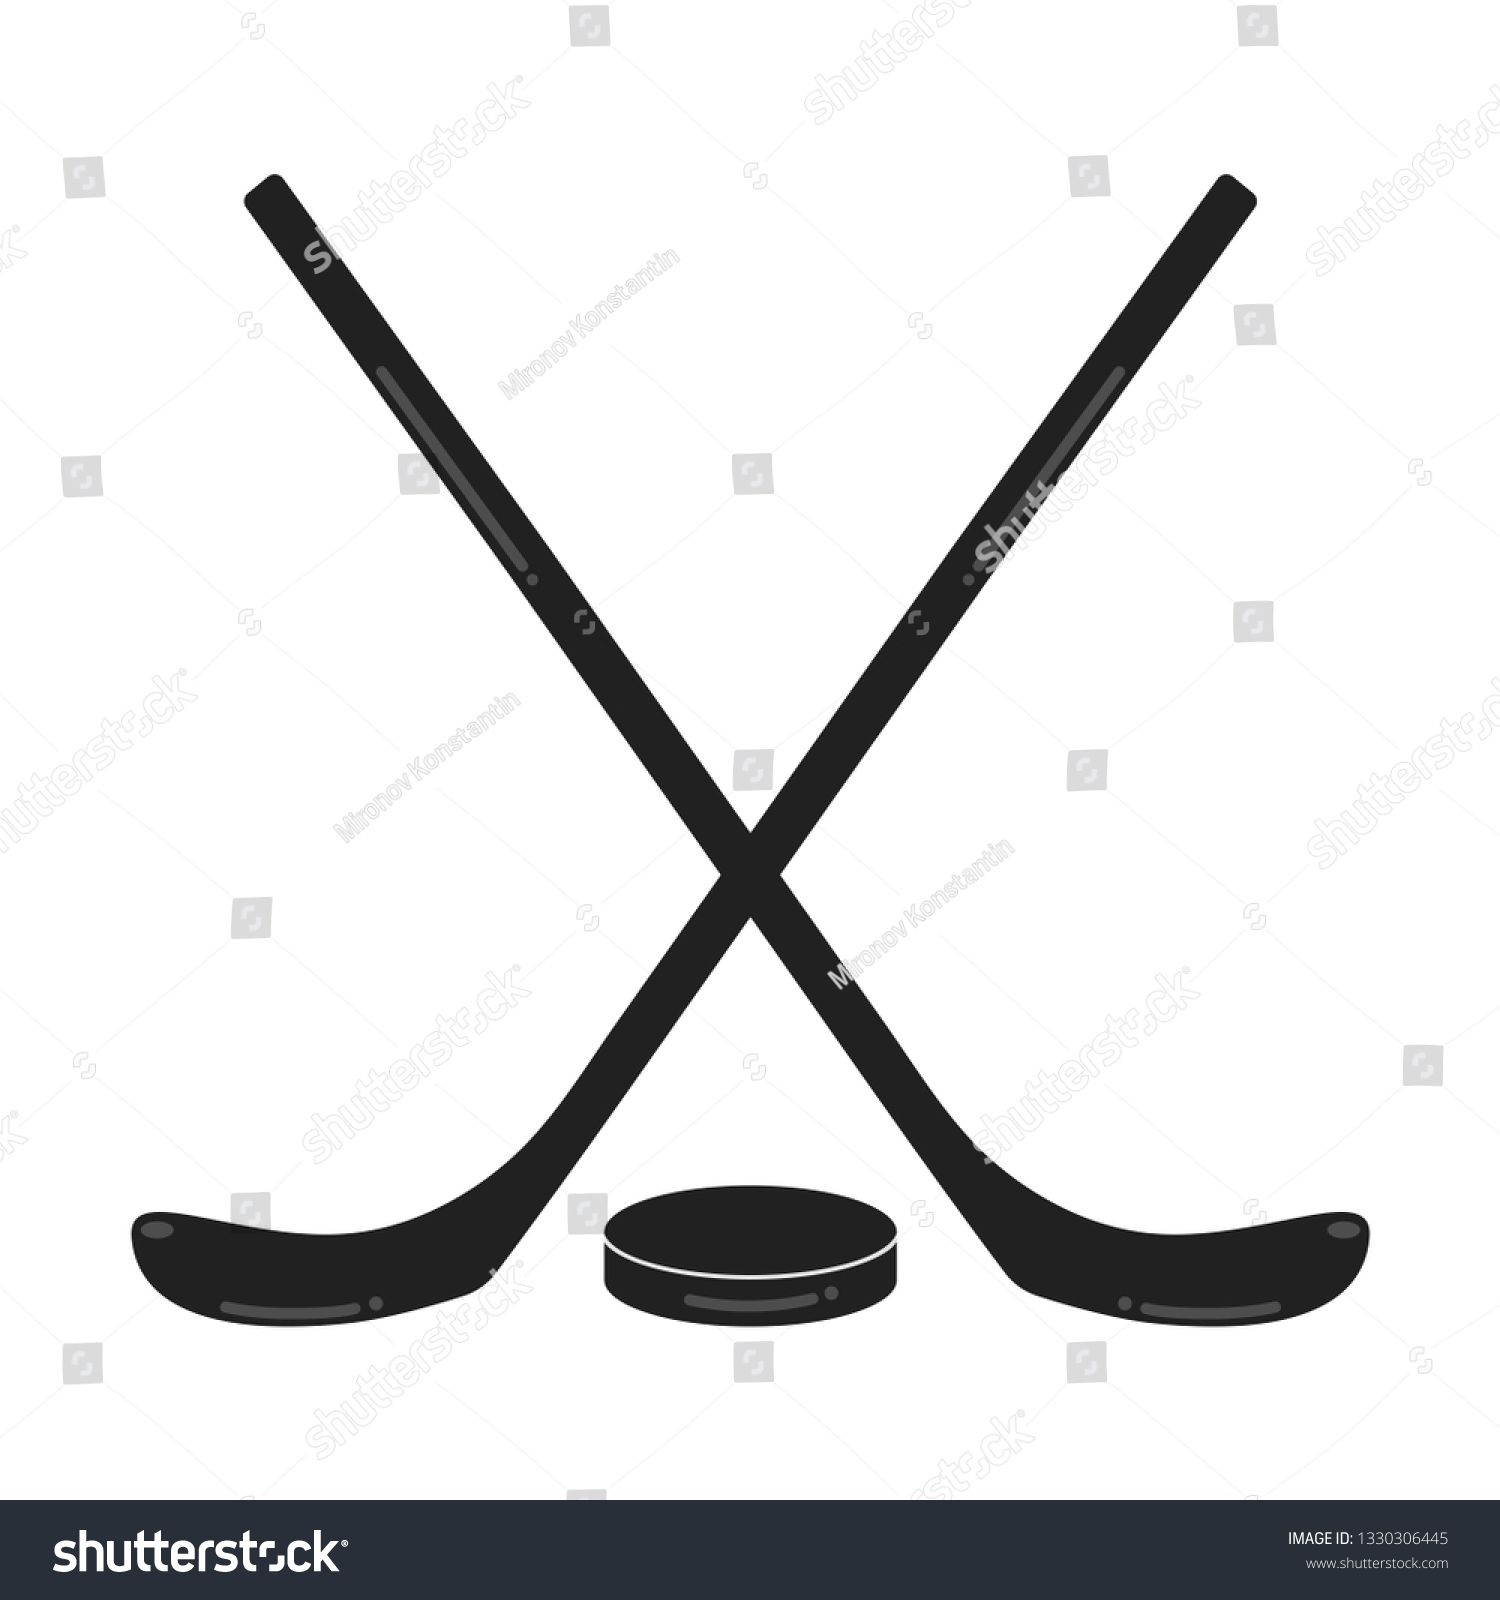 Two Black Hockey Sticks And The Puck Flat Style Design Composition Vector Illustration Icons Signs Isolated On White Bac Hockey Stick Composition Design Hockey